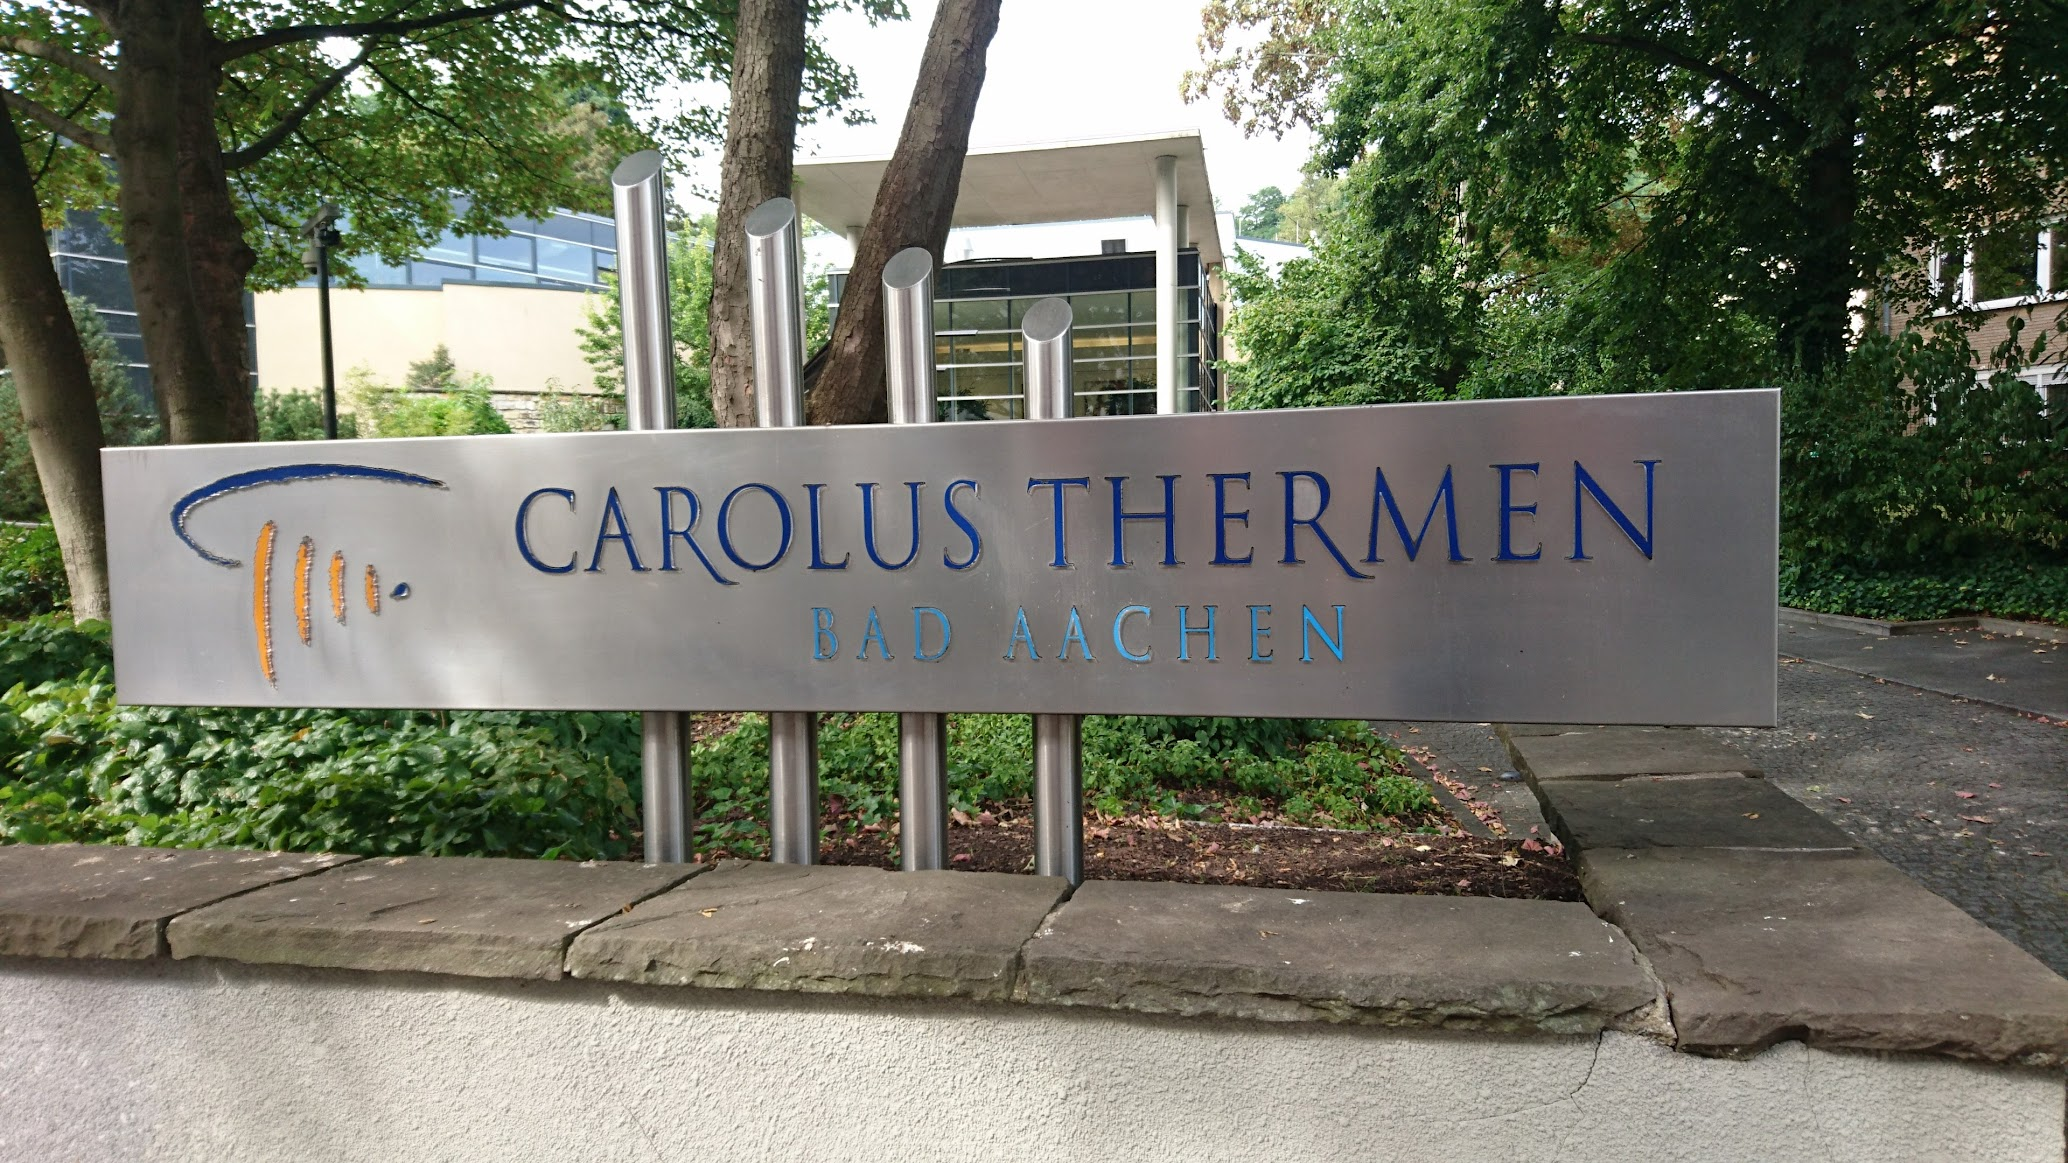 Carolus Thermen Bad Aachen Logo